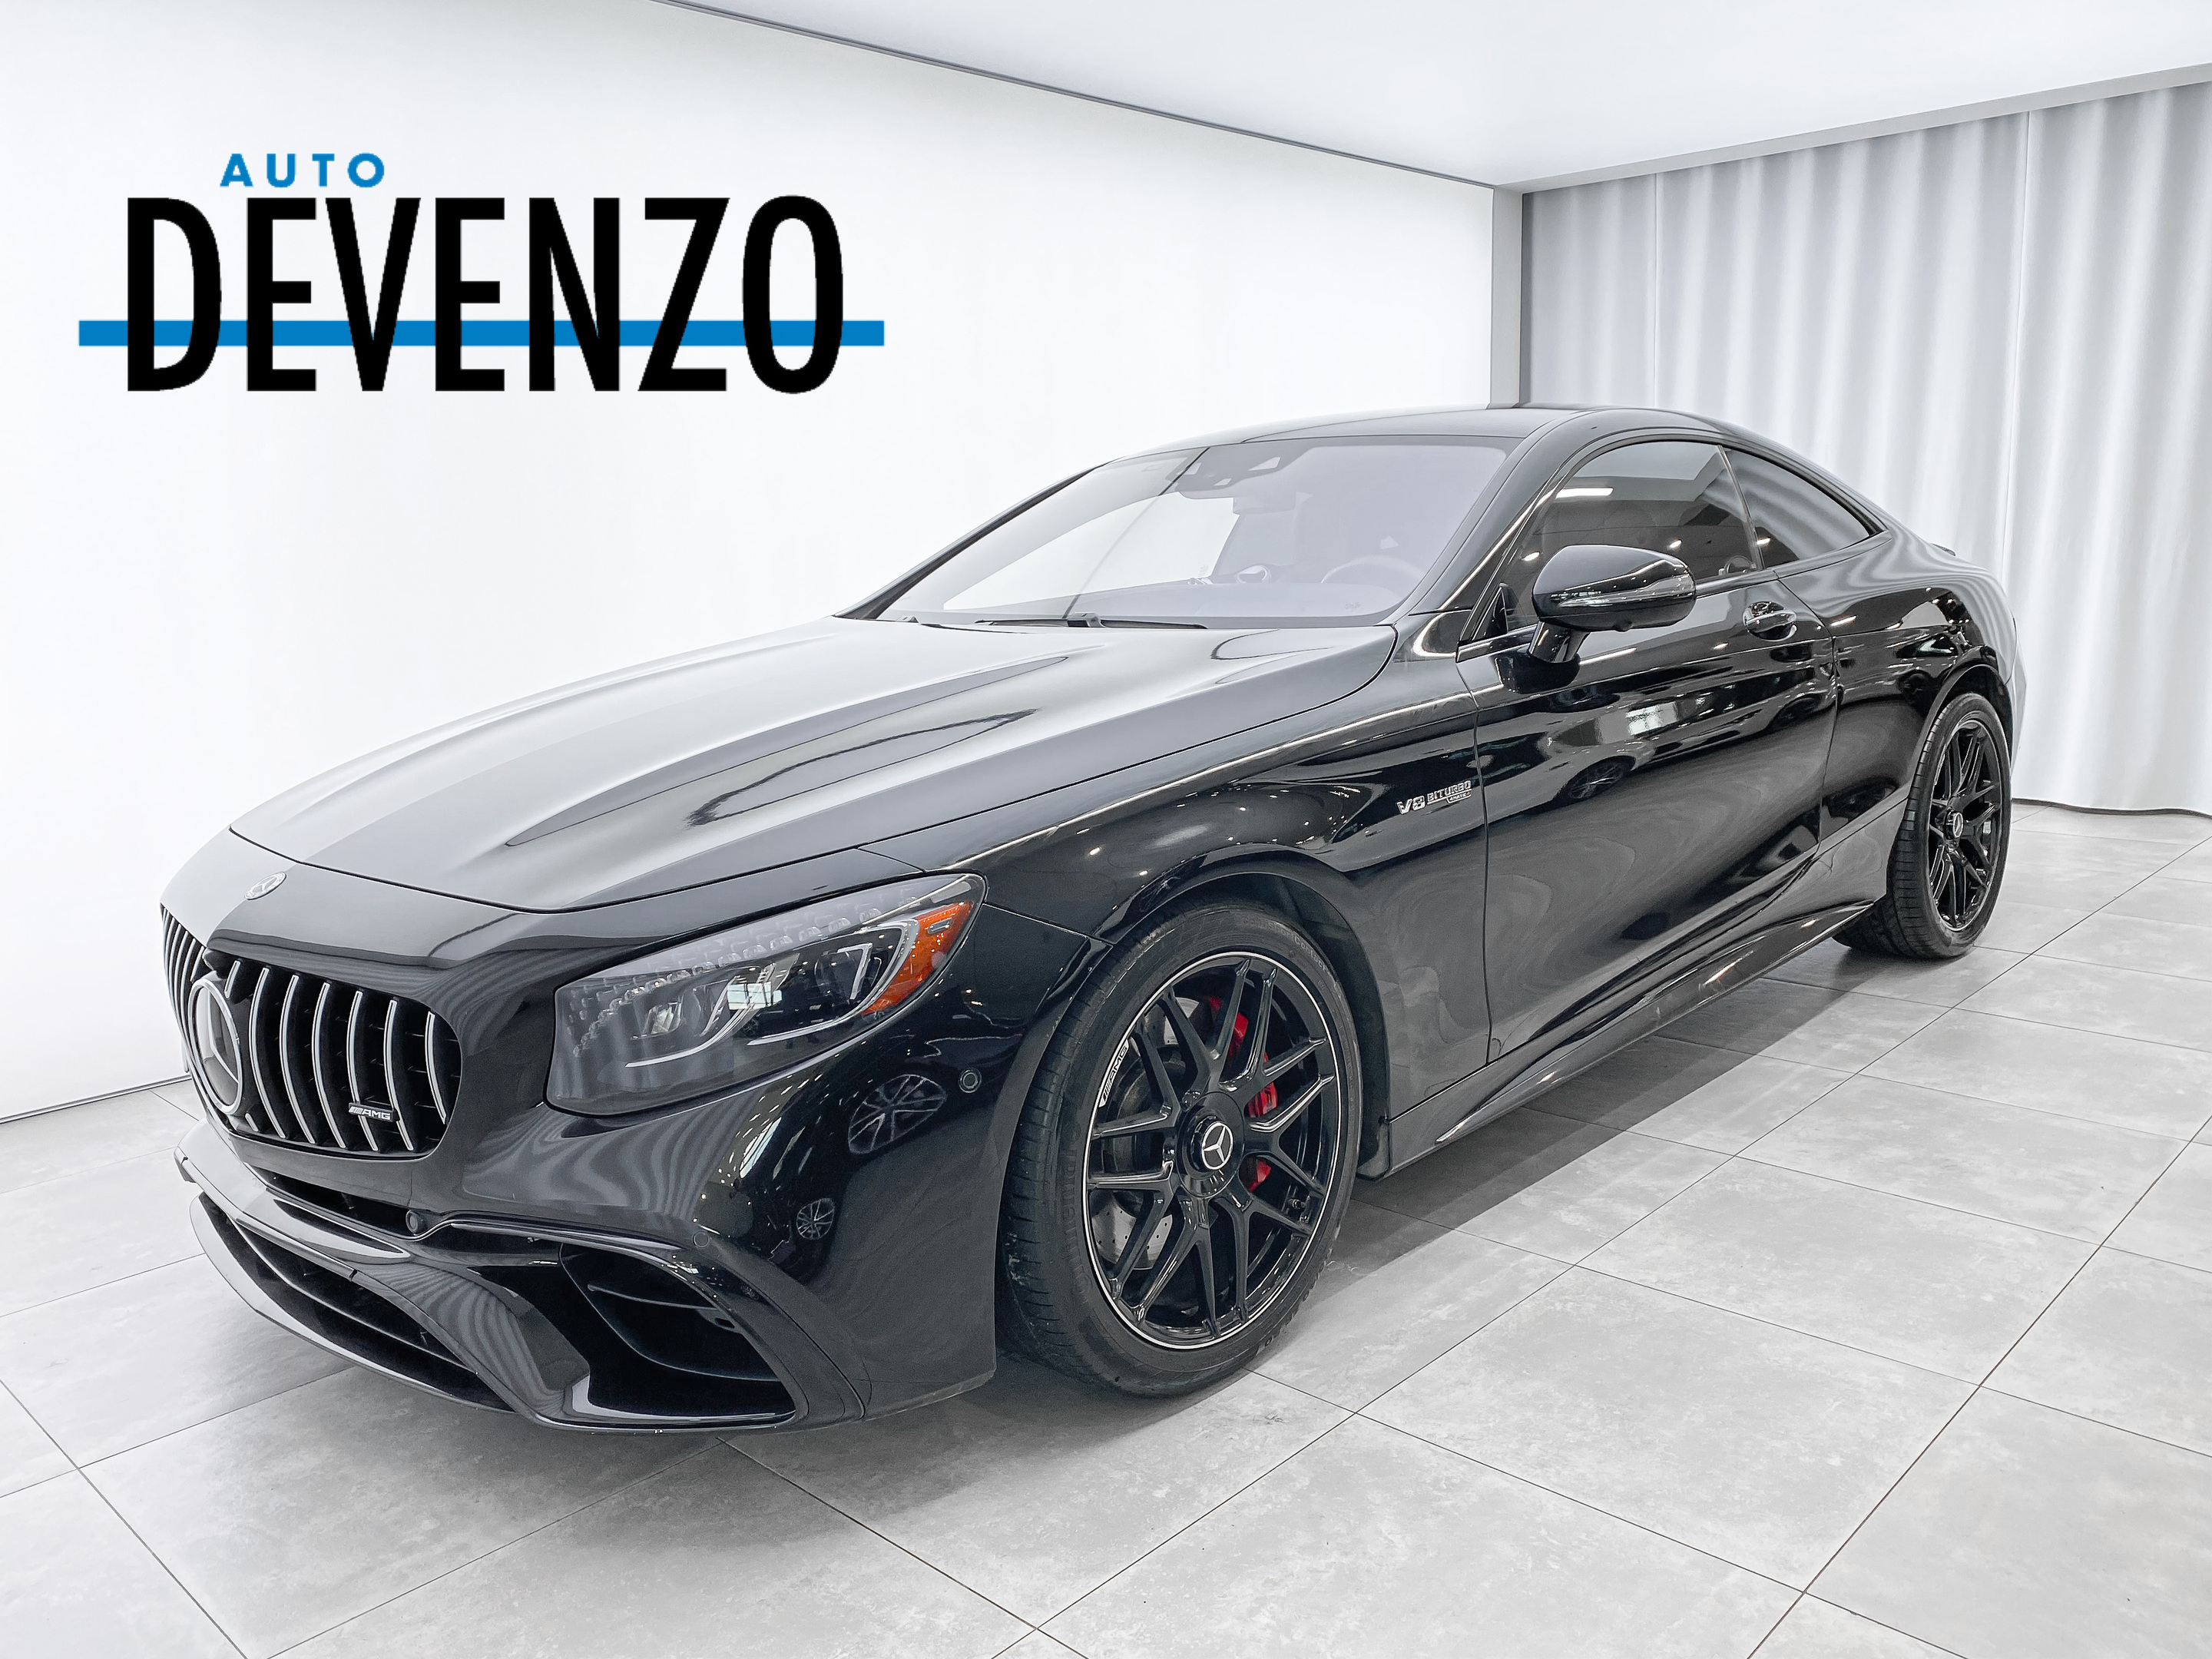 2018 Mercedes-Benz S-Class AMG S63 4MATIC+ Coupe Night Package / Designo complet